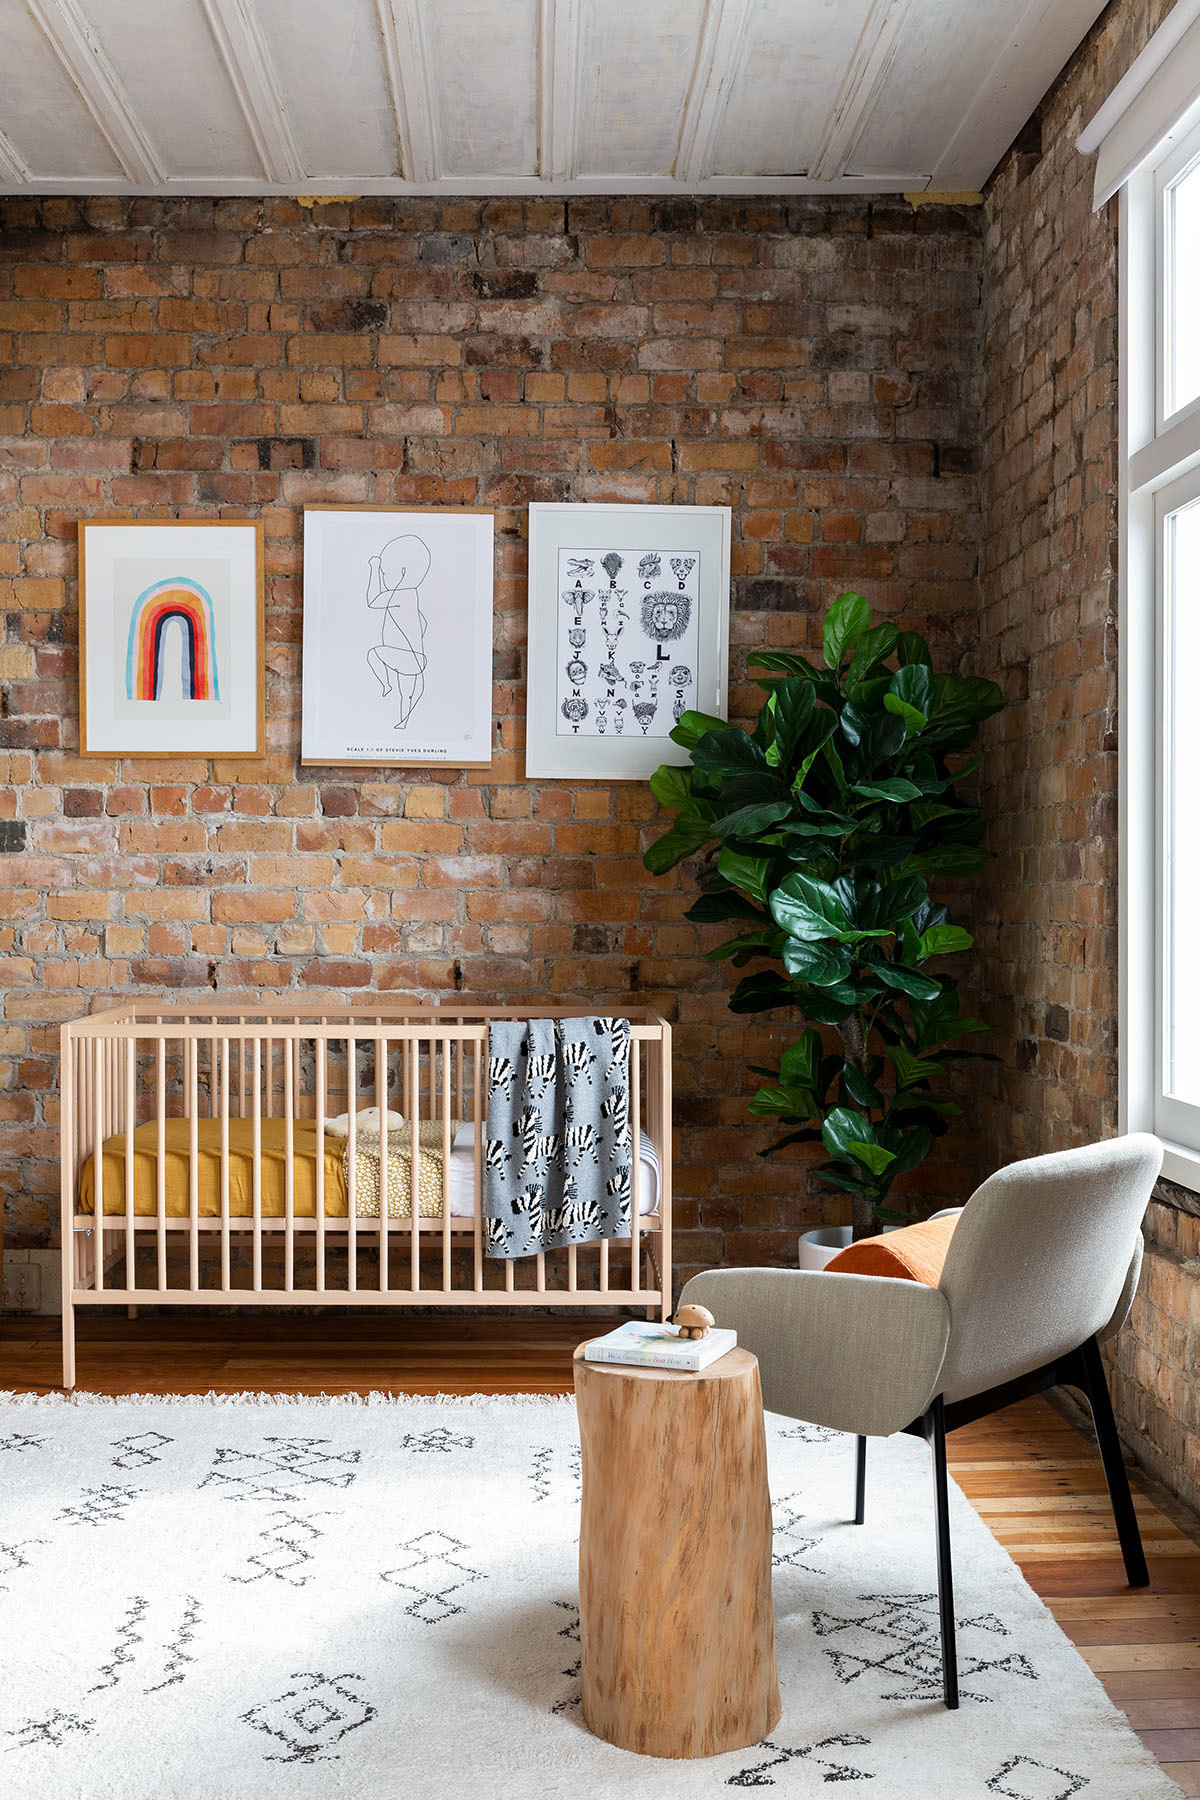 Stevie's nursery nook, complete with an IKEA crib and Città accent chair, is a calming, ultimately serene space. Nature Baby, Città Bedding; The Birth Poster Artwork; Custom Artwork; Custom Stool; Città Pillow; Flooring Direct Rug.